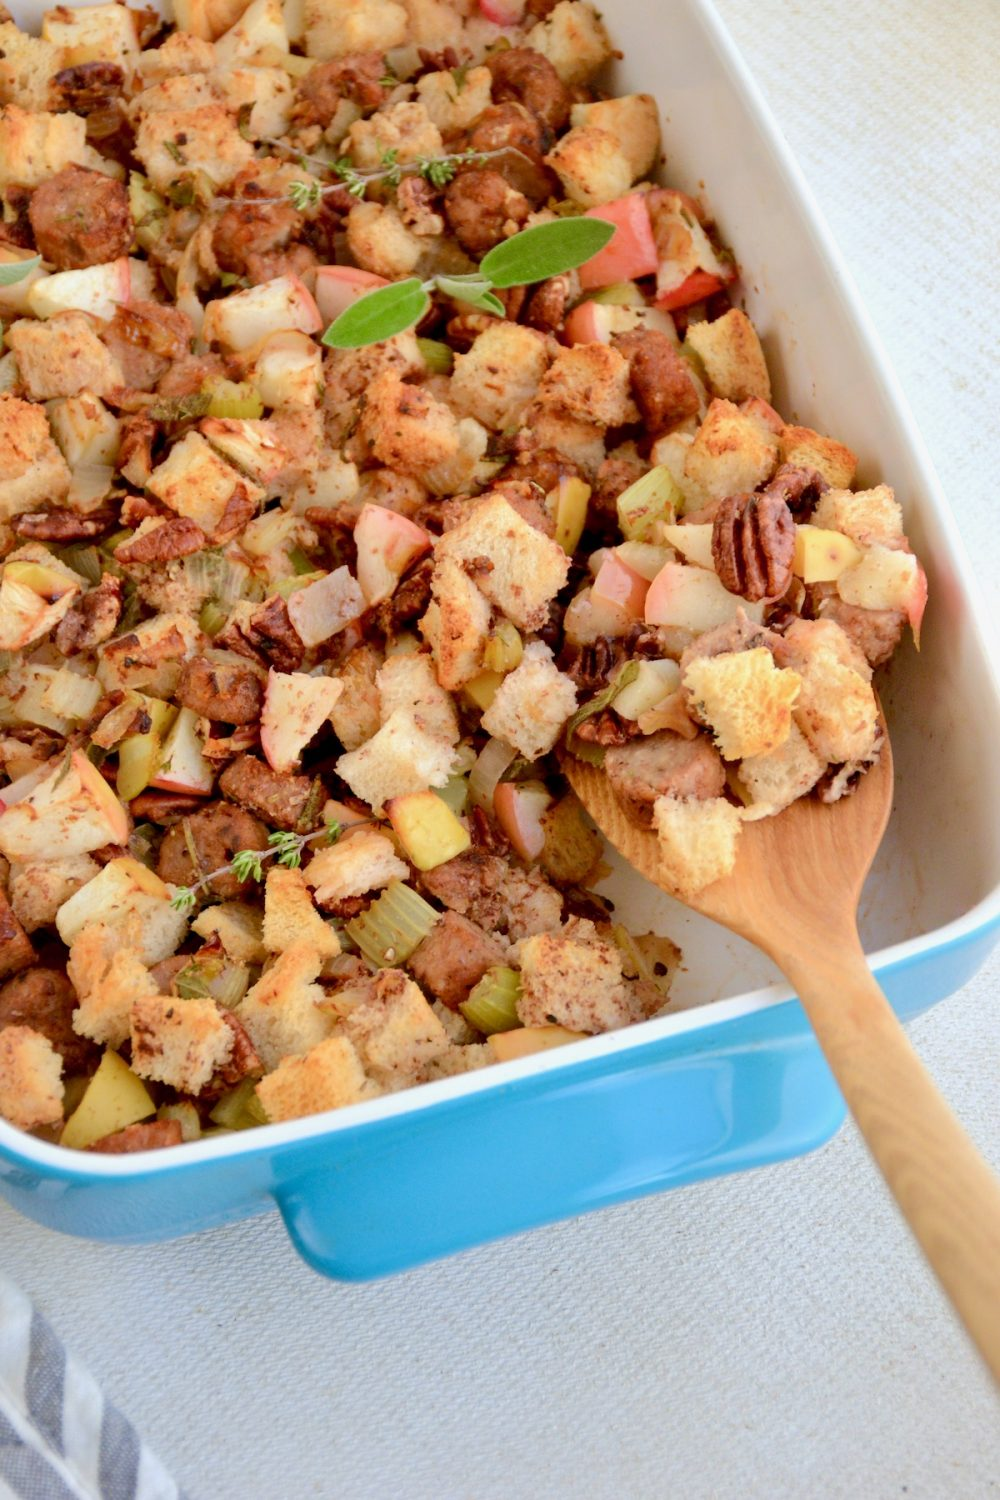 A spatula lifts a portion of stuffing from the dish.